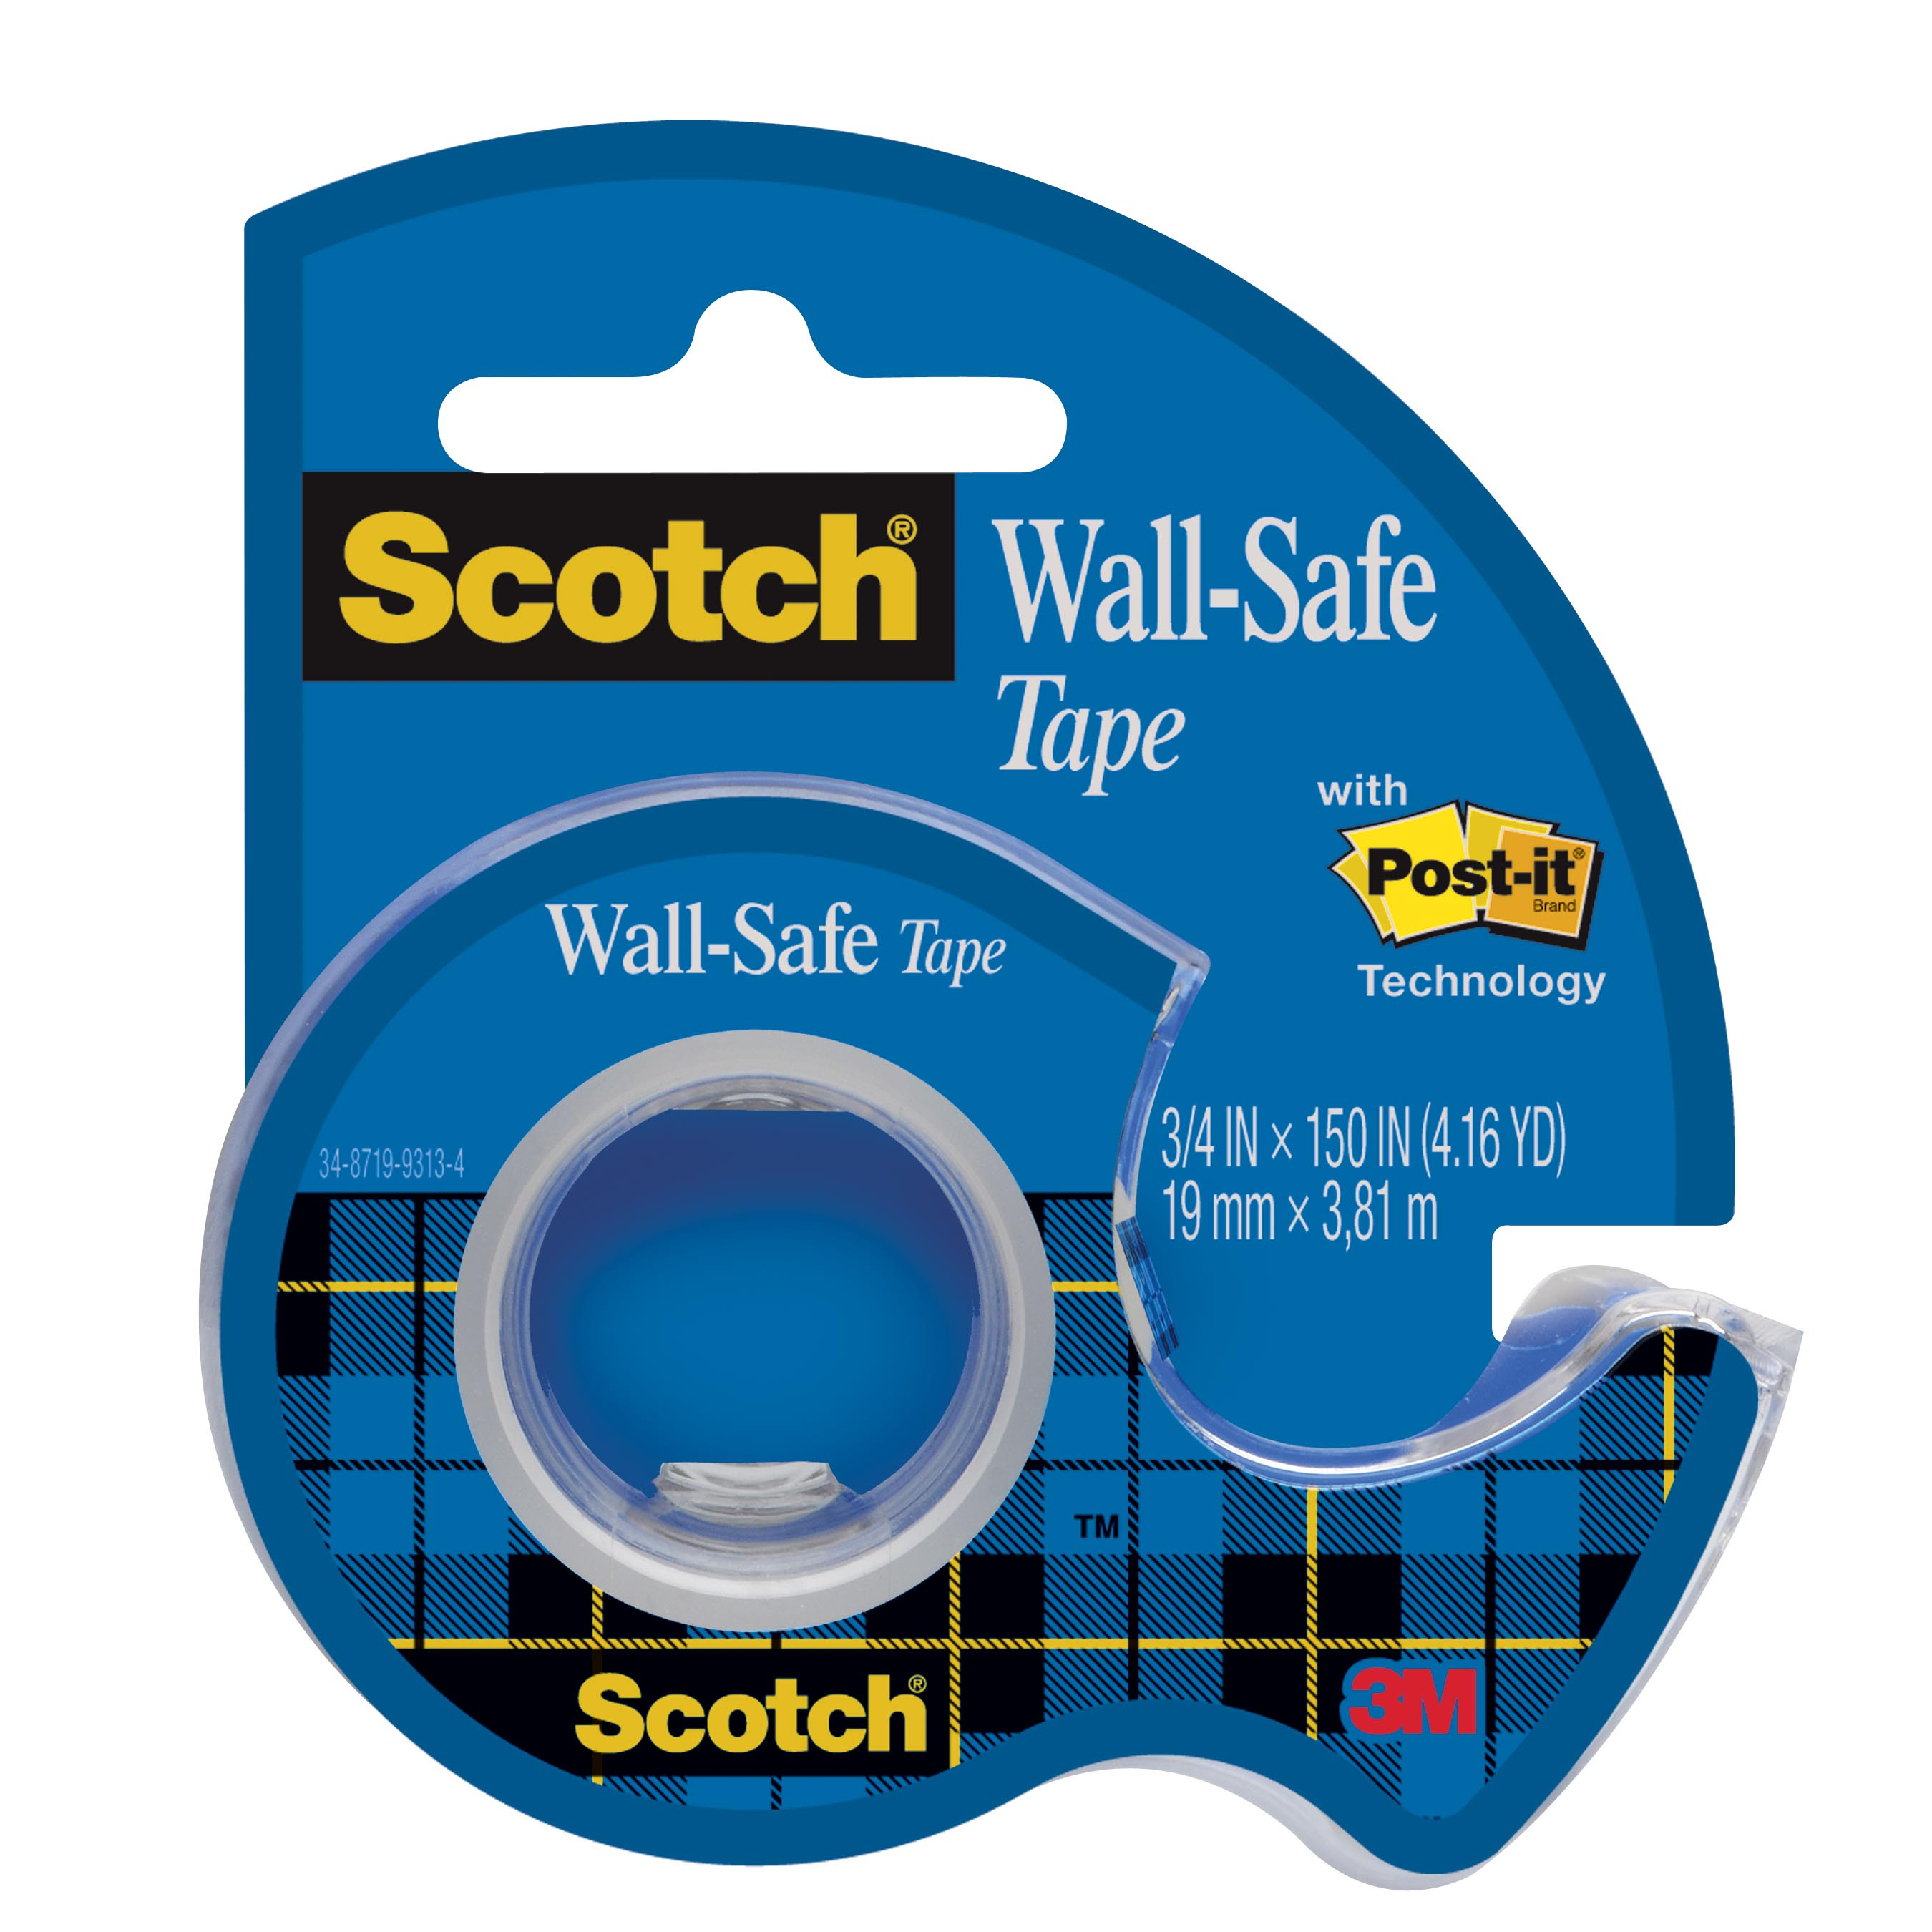 Scotch(r) Wall-safe Tape 500 In